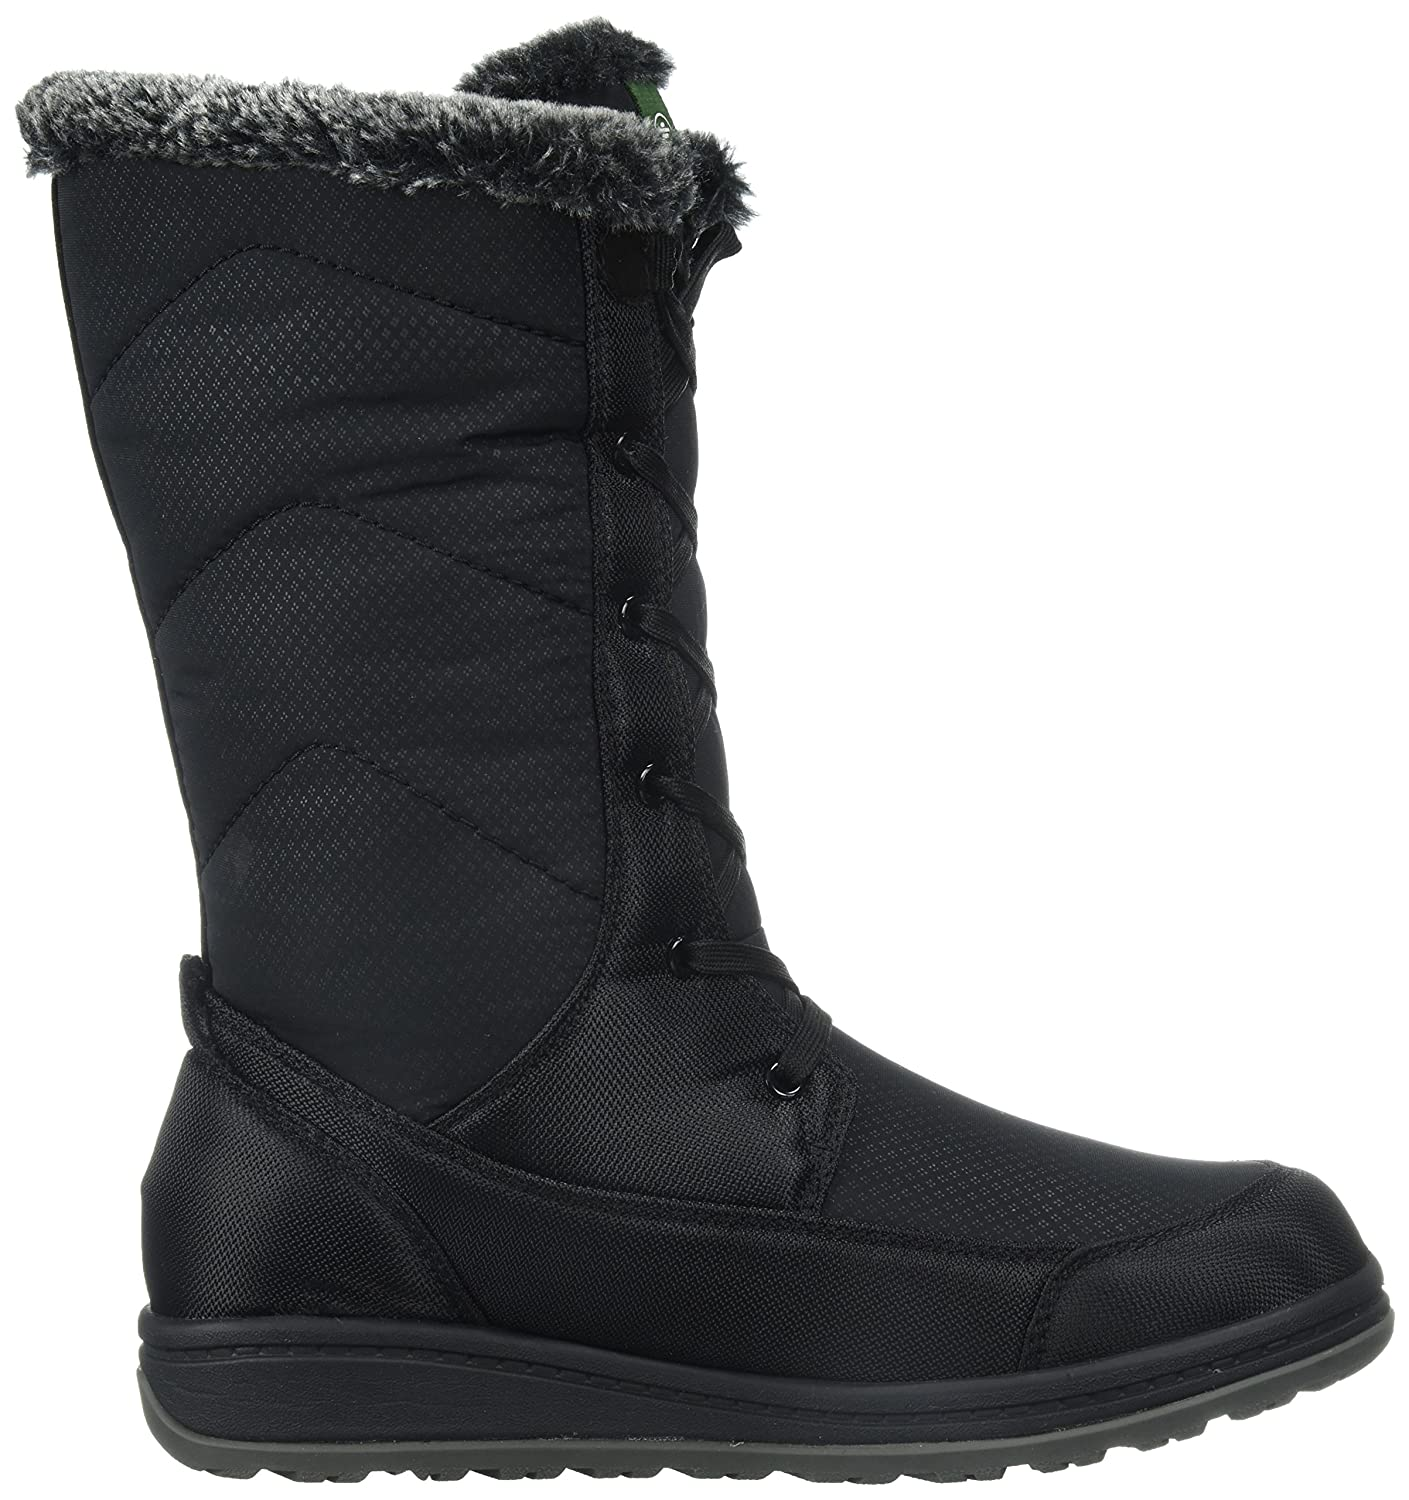 Kamik Women's Quincy Snow Boot B01N0W0ZL6 6 D US|Black